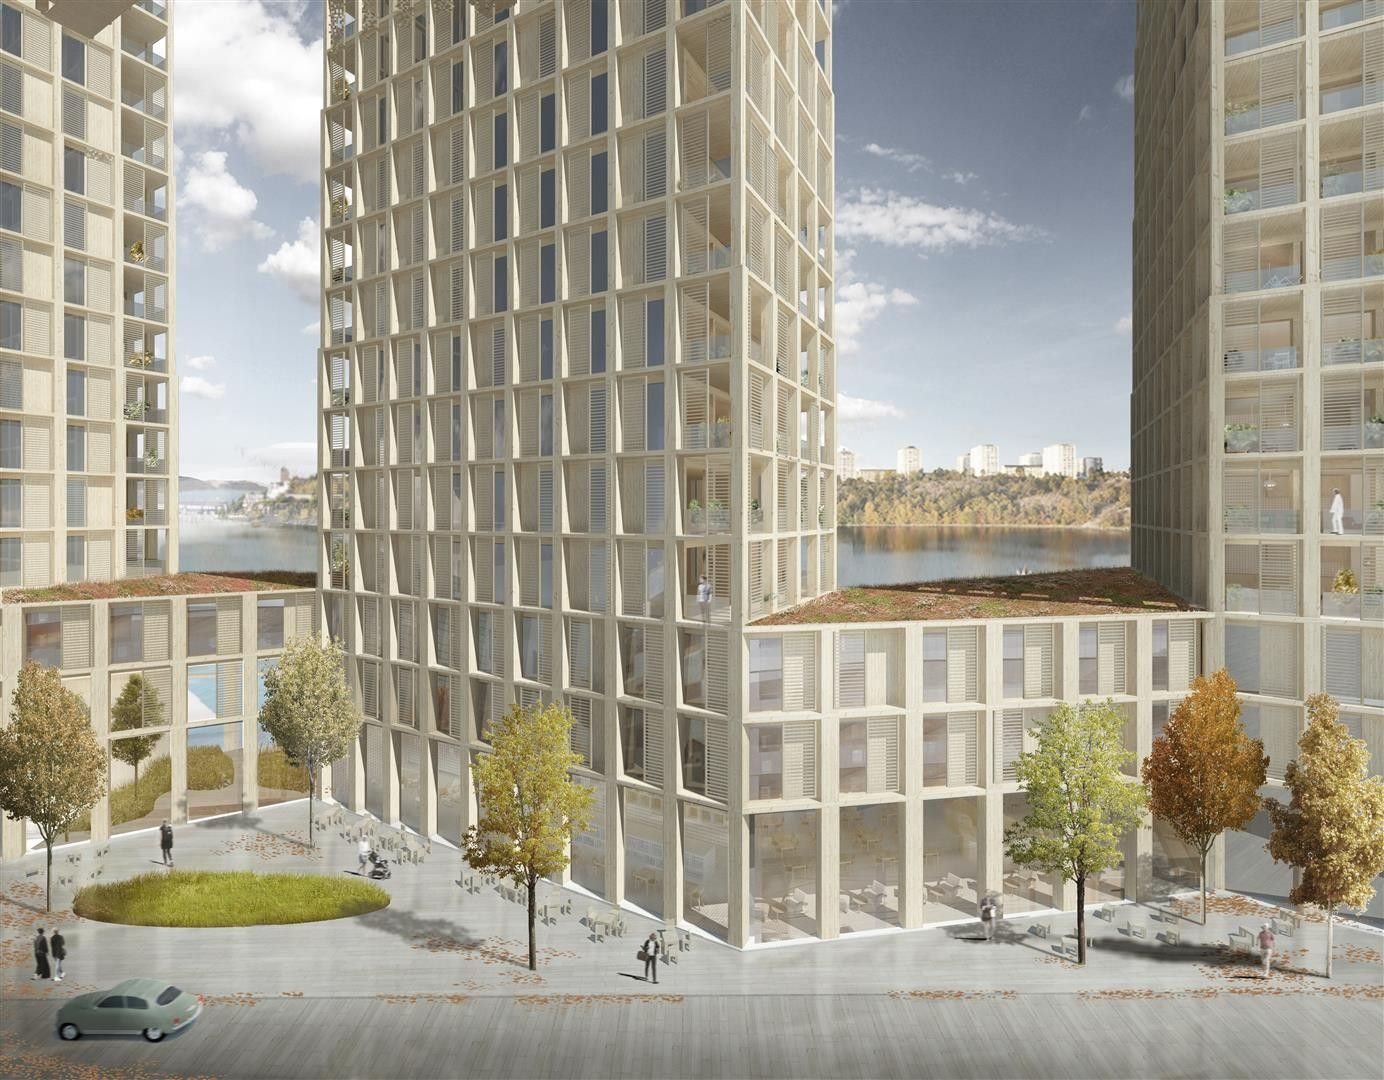 Tham & Videgård Propose Wooden High-Rise Housing for Stockholm,Plaza at Inner Street. Image © Tham & Videgård Arkitekter